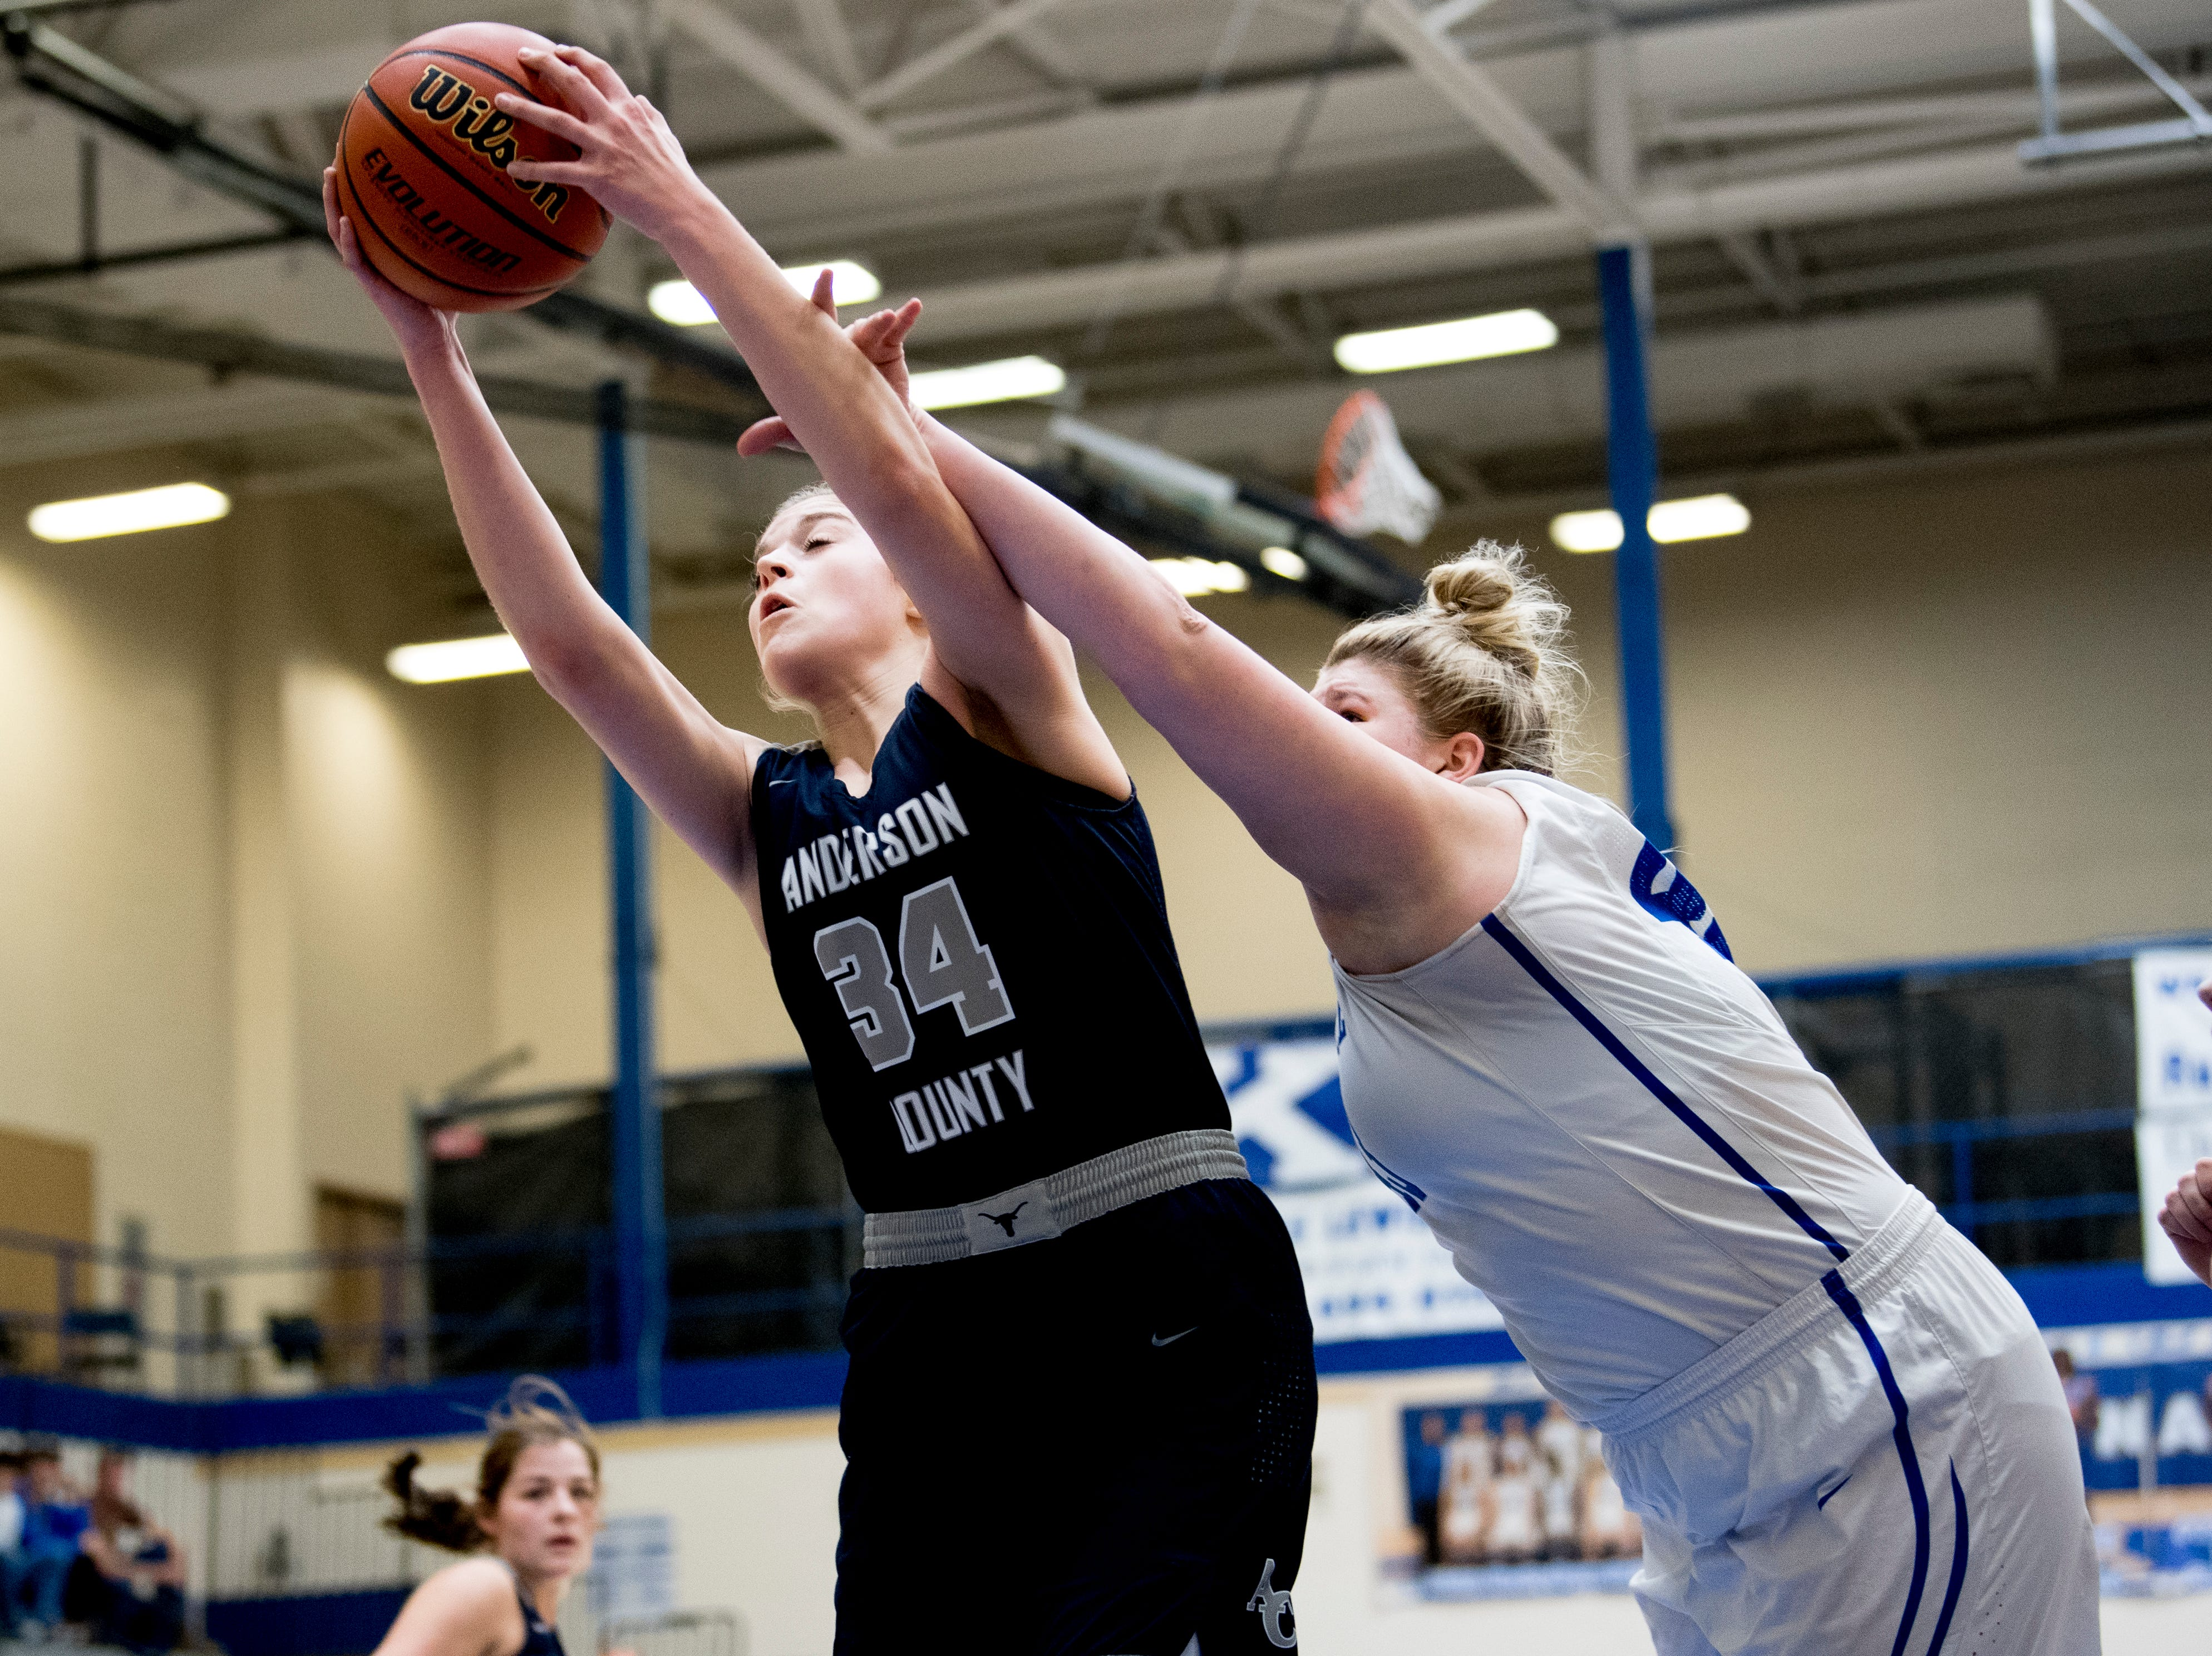 Anderson County's Brooklyn McCoy (34) grabs the rebound past Campbell County's Madison Brady (43) during a game between semifinal game between Anderson County and Campbell County at Karns High School in Knoxville, Tennessee on Saturday, February 16, 2019.